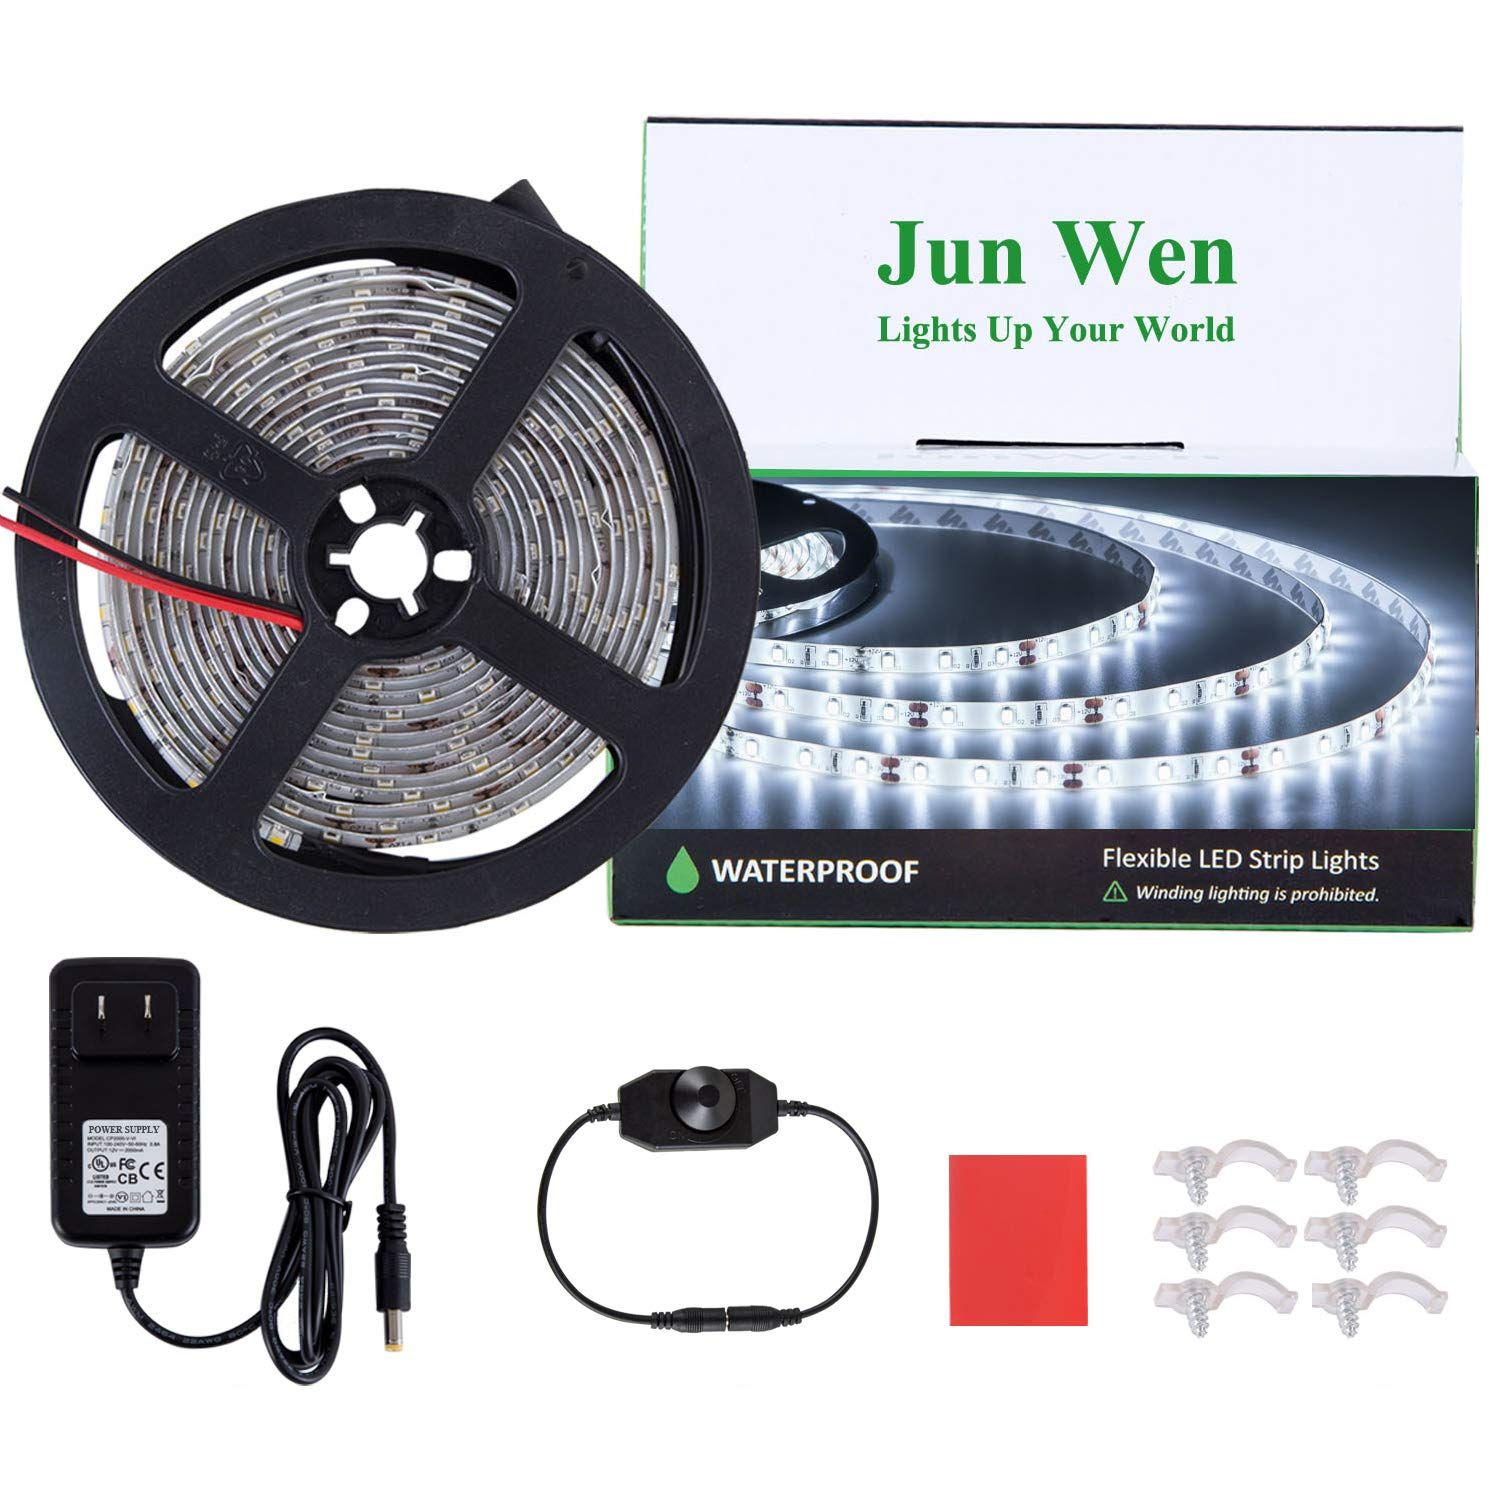 Dimmable Led Strip Lights Kit Daylight White 16 4ft 5m Waterproof Led Tape Ribbon Light Flexible 300 Units Smd Led Strip Lighting Waterproof Led Strip Lighting